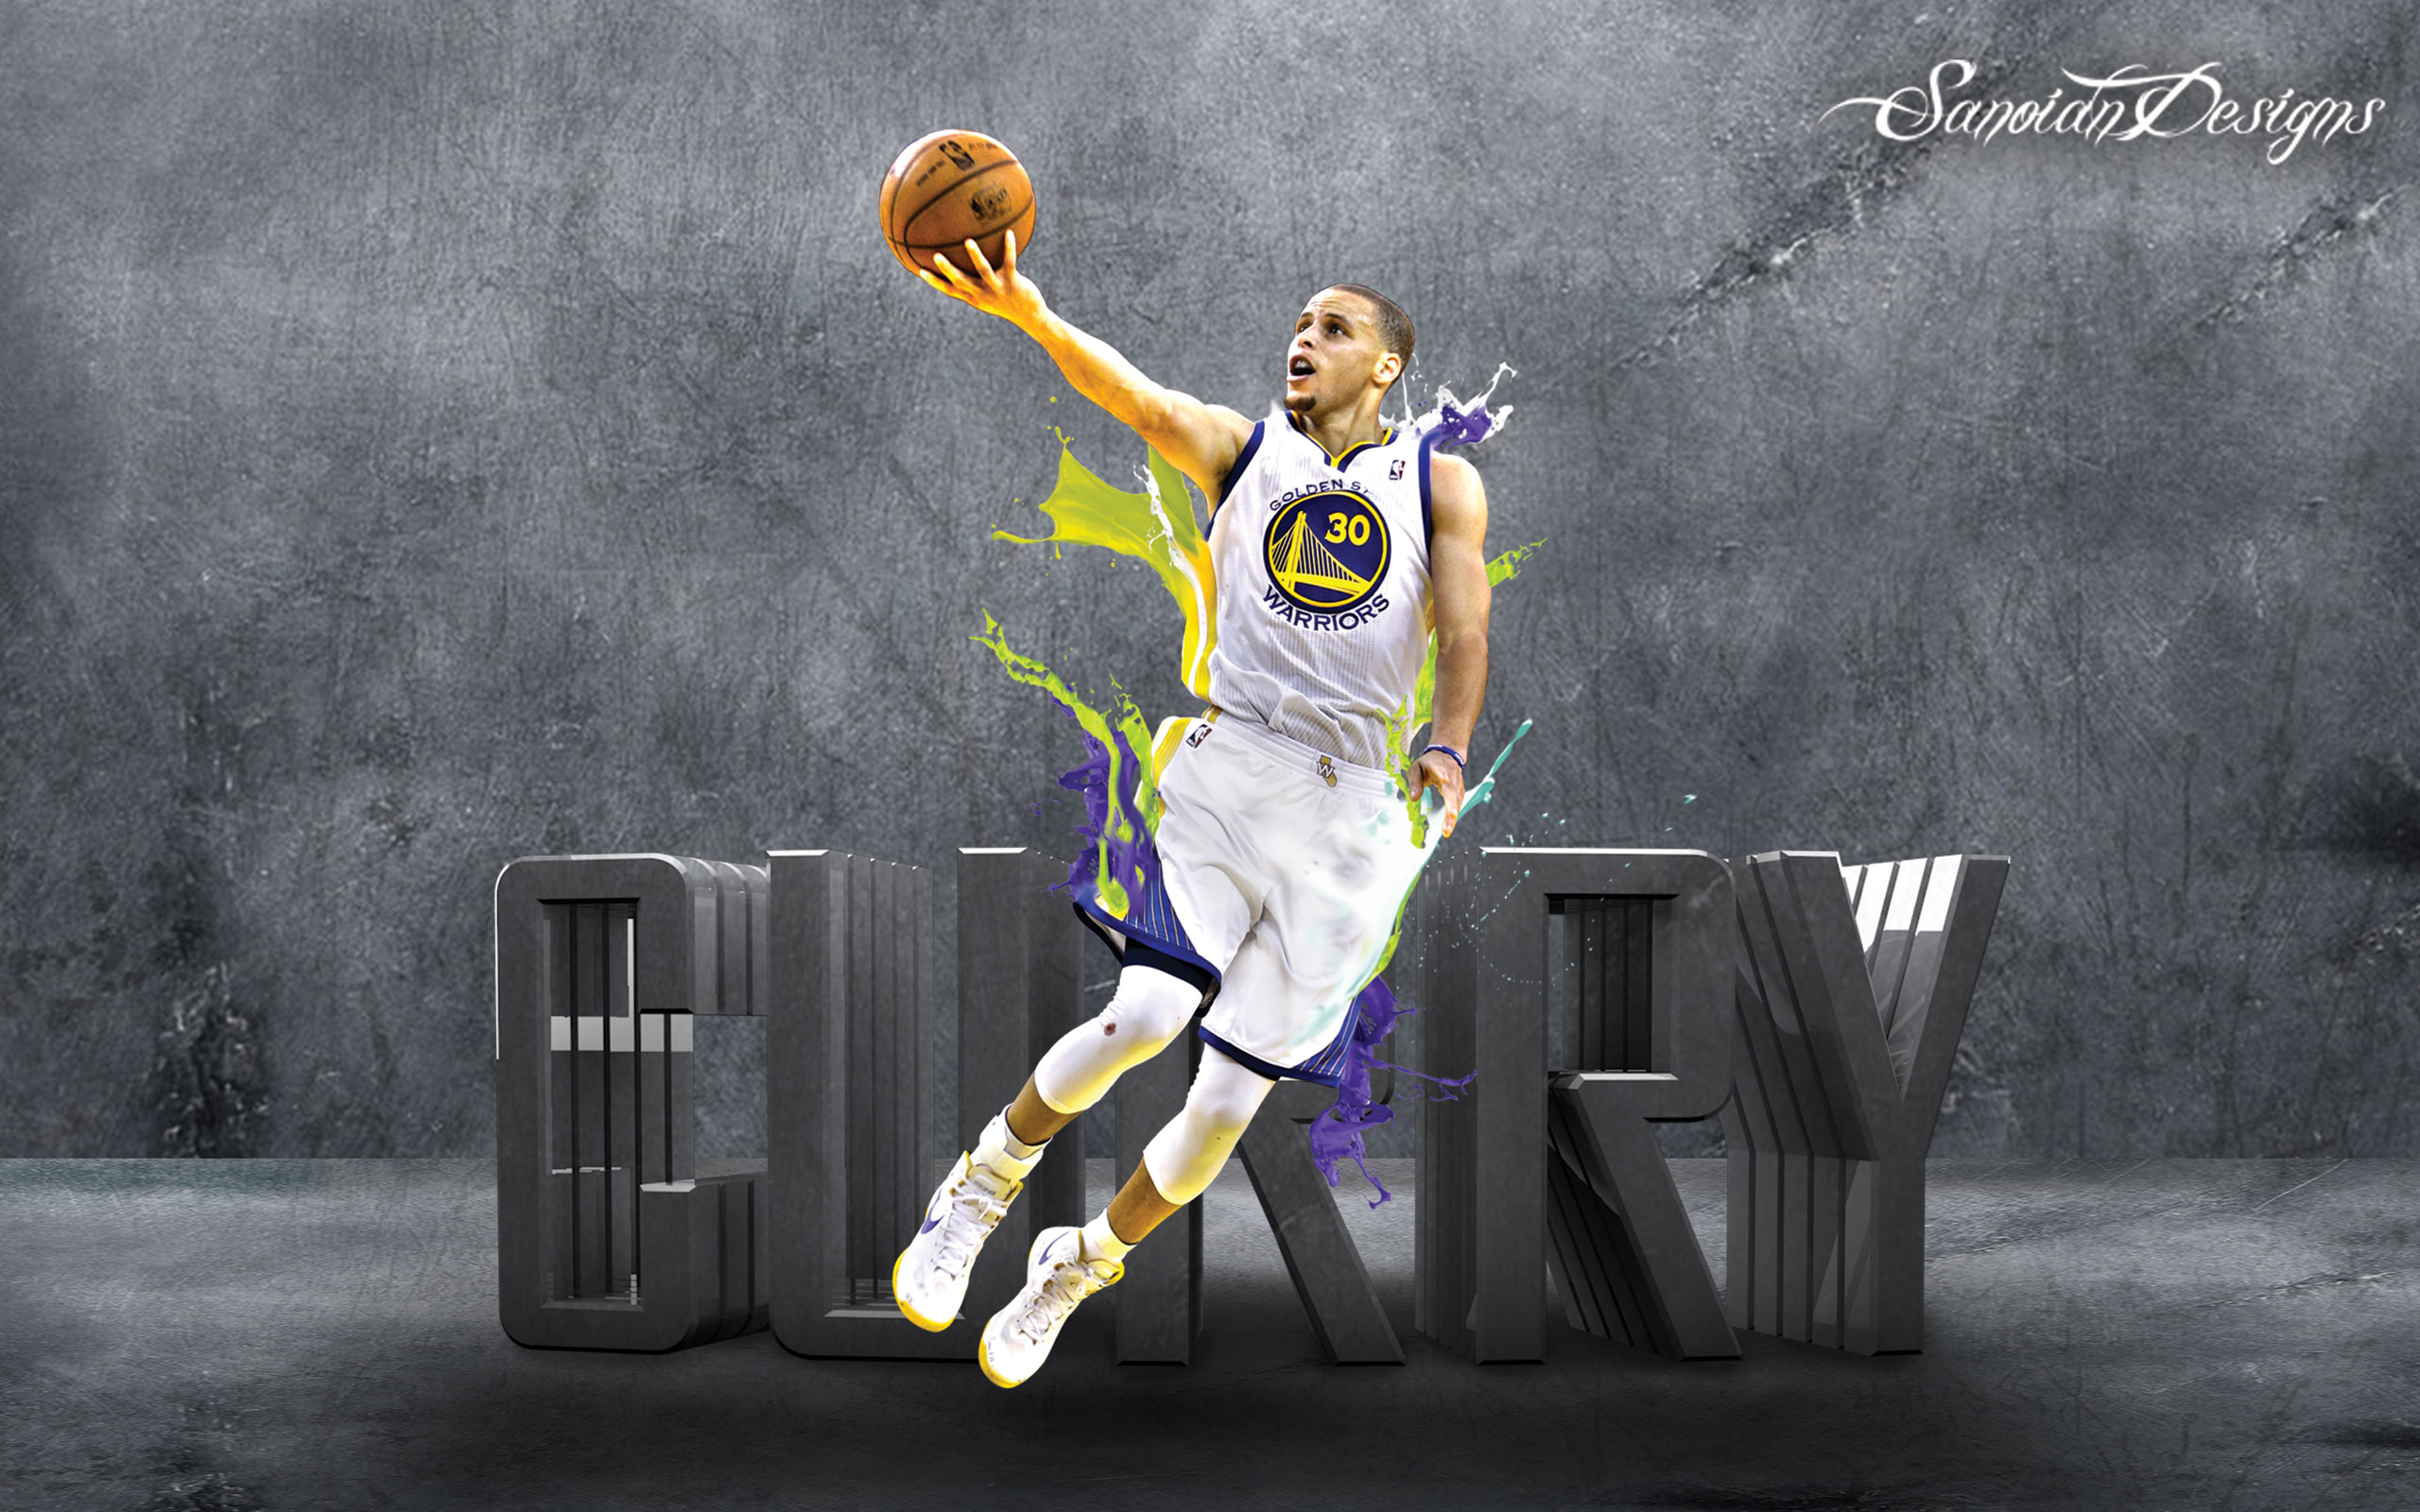 Stephen Curry Splash Wallpaper The Art Mad Wallpapers 2560x1600